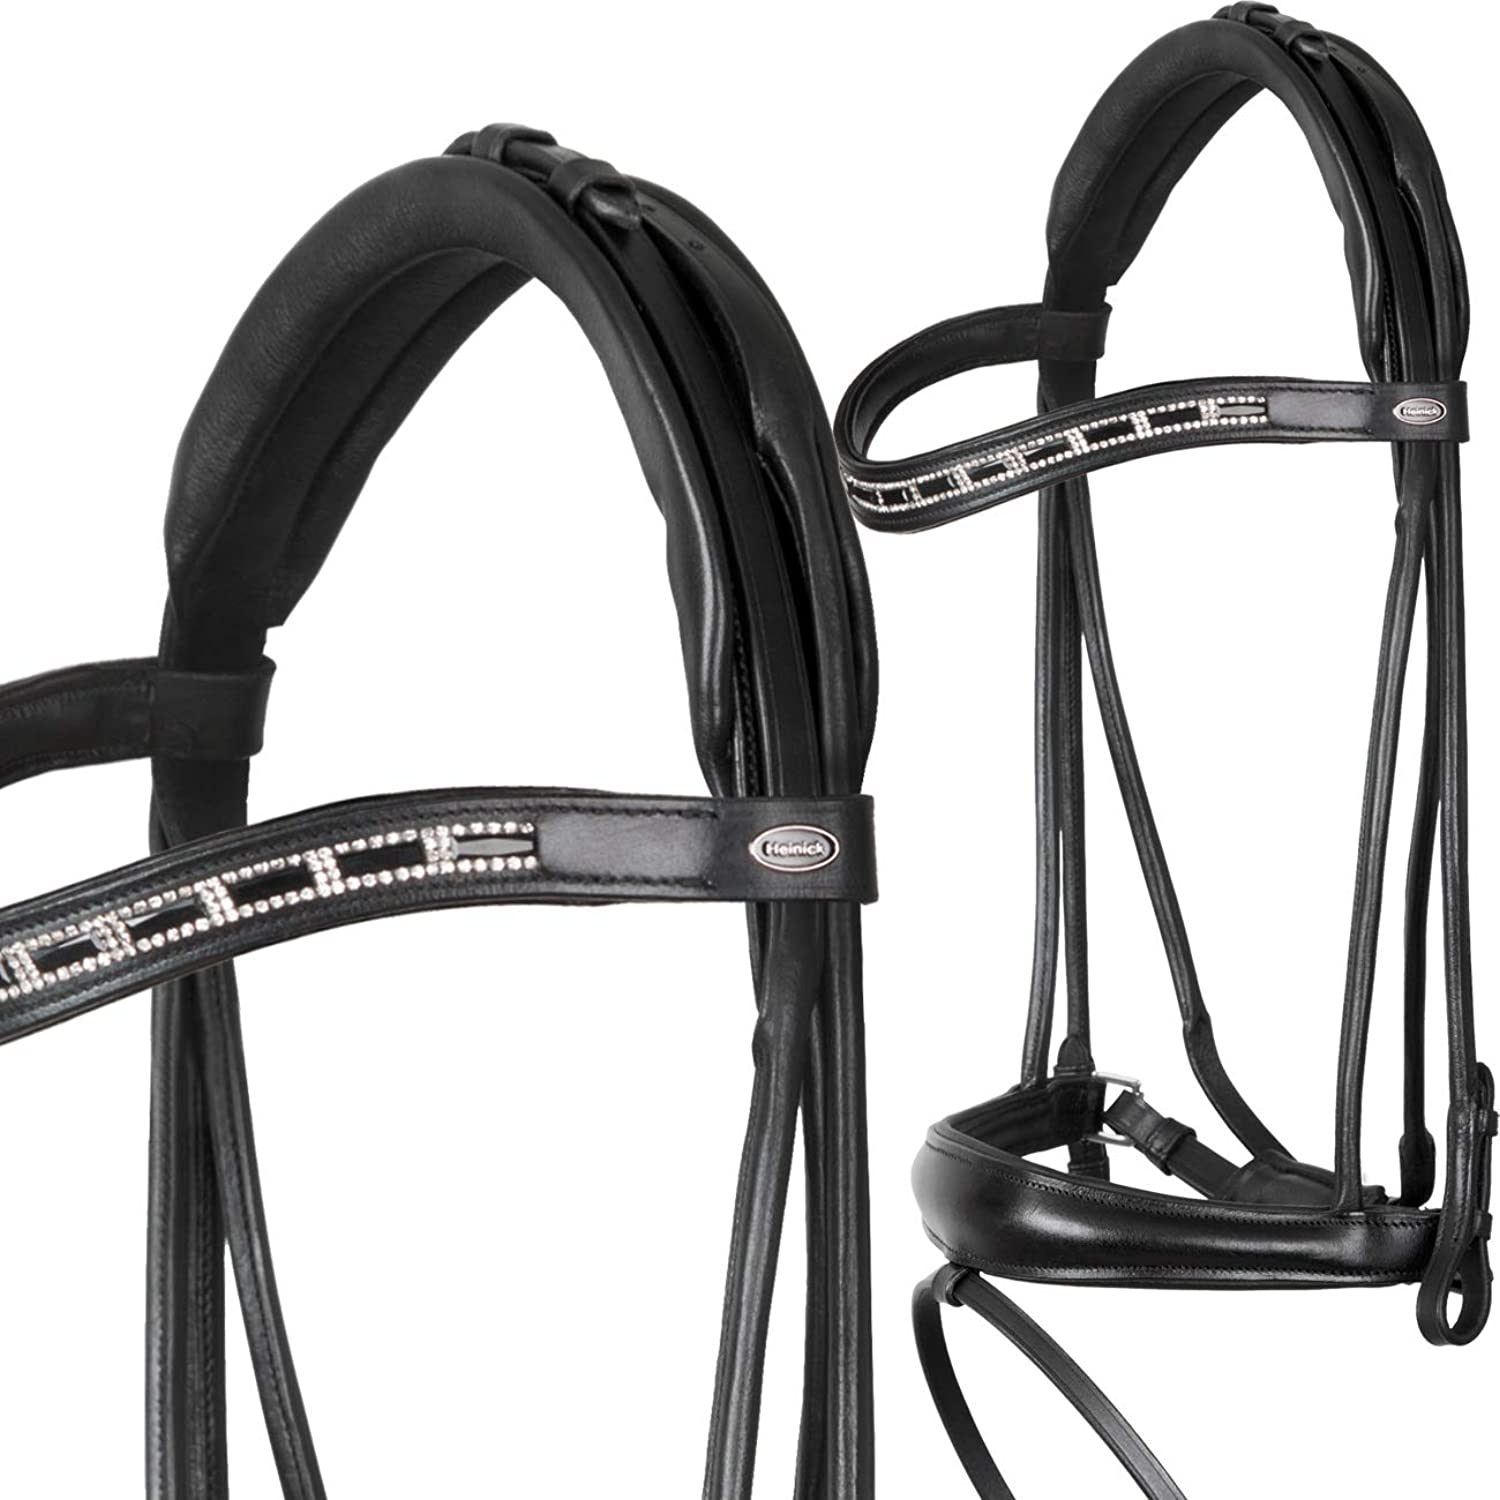 Heinick  Stitched Edging Panja  Equestrian Fine Proline Snaffle Bridle Swedish RH Warmblood Horses